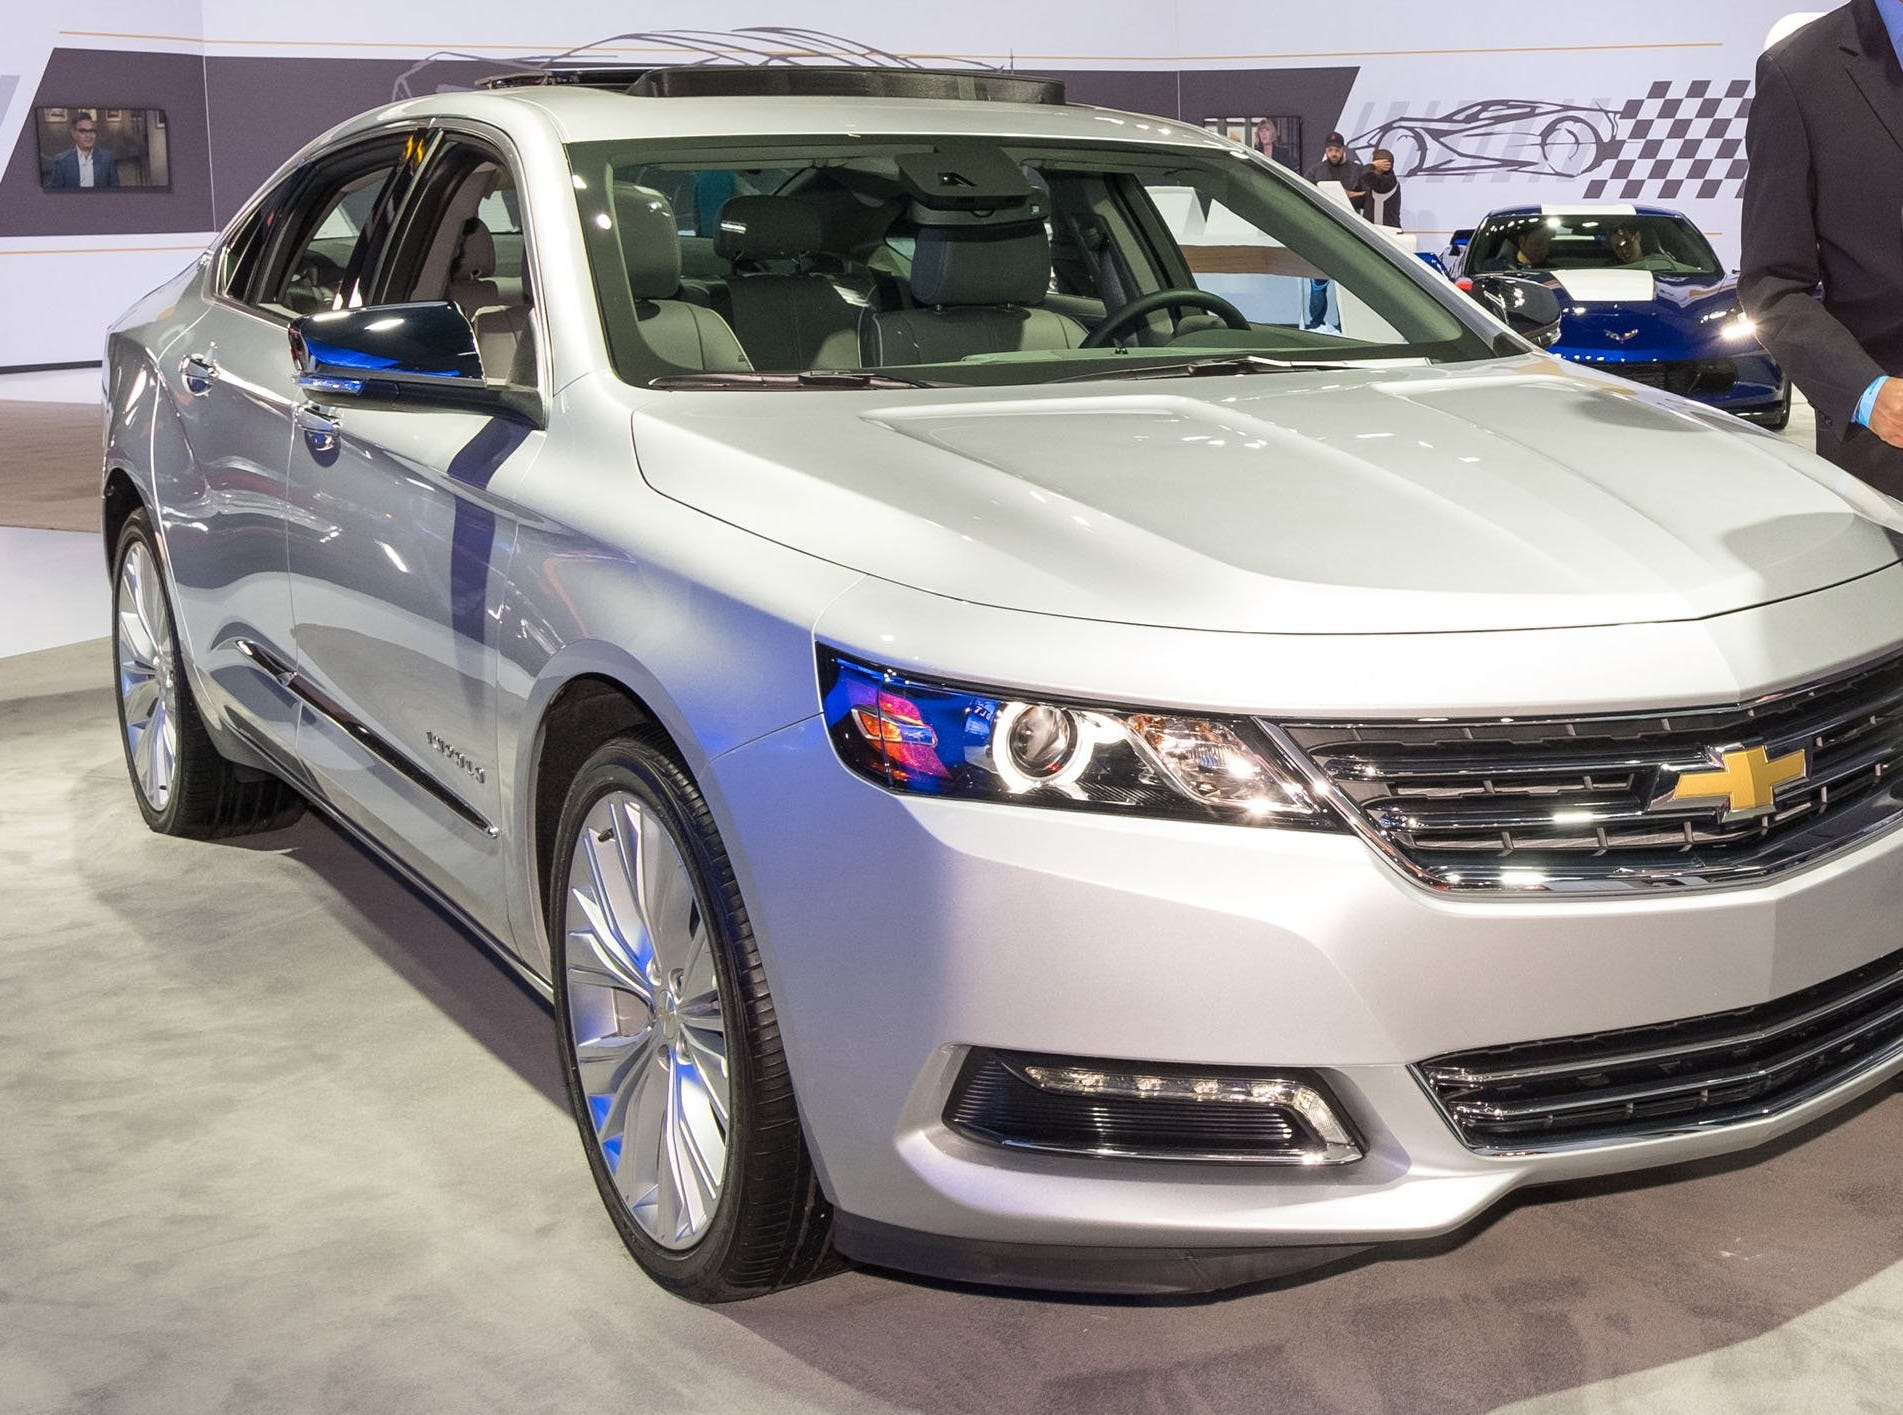 The 2017 Chevrolet Impala at the 2016 at Automobility LA - the press and trade days preceding the Los Angeles Auto Show in Los Angeles, California.